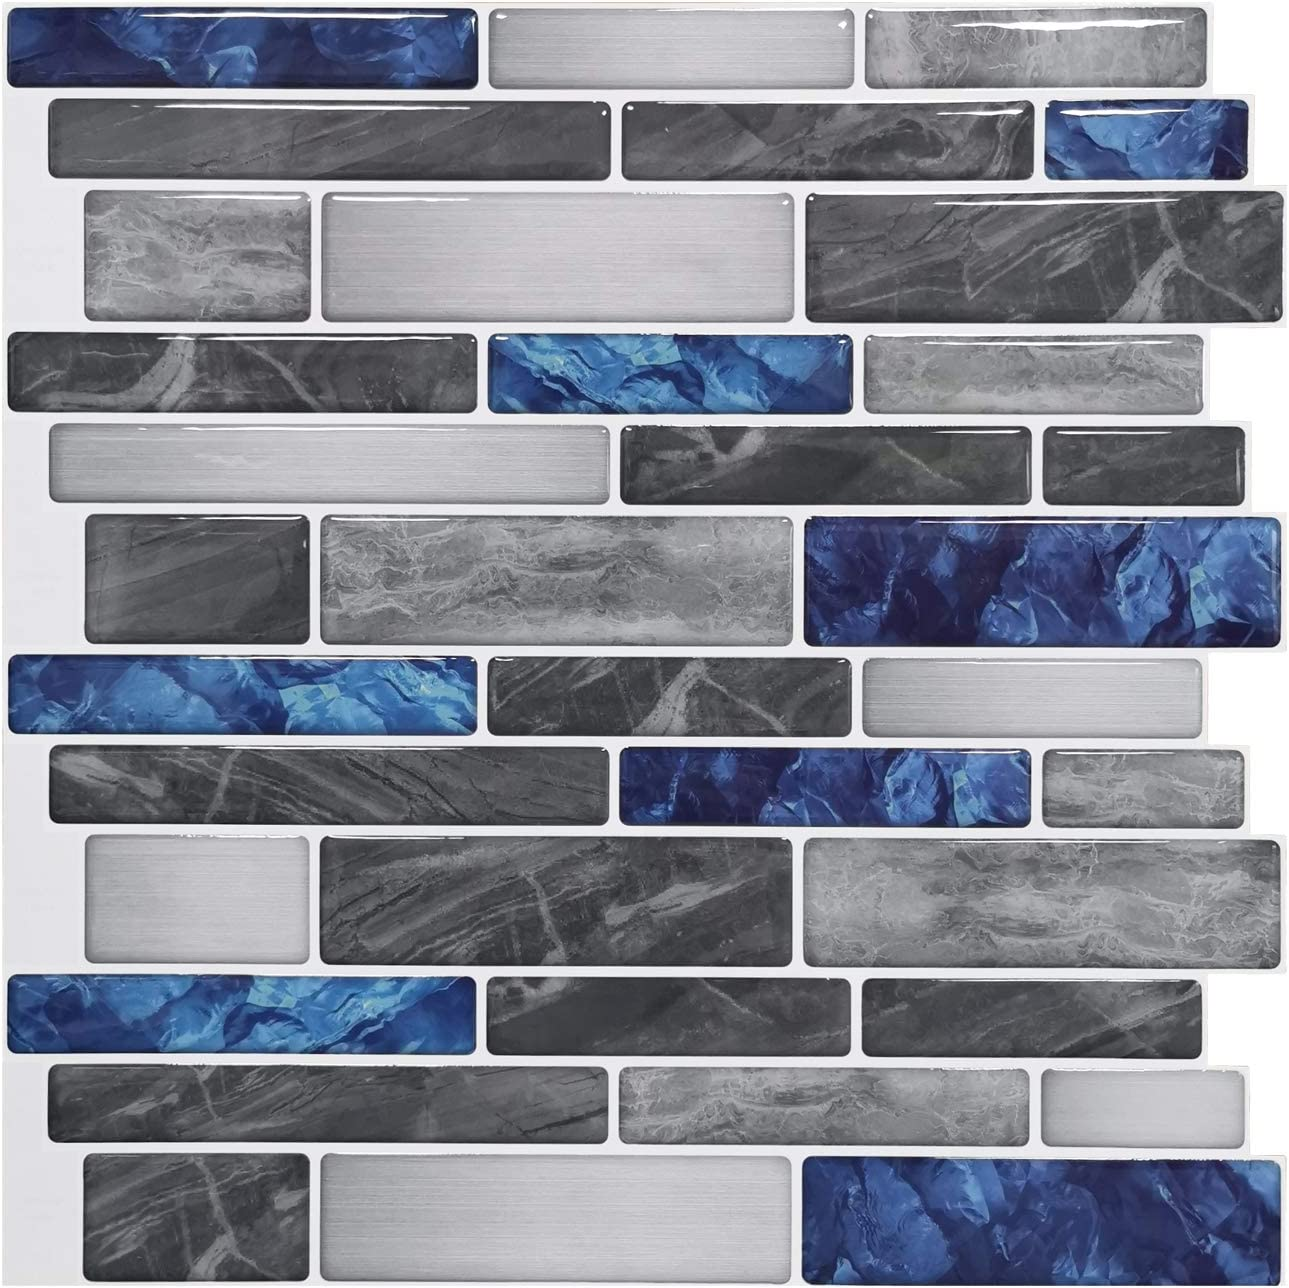 "Art3d 10-Sheet Premium Anti-Mold Self-Adhesive Kitchen Backsplash Tiles in Marble, 12""X12"""